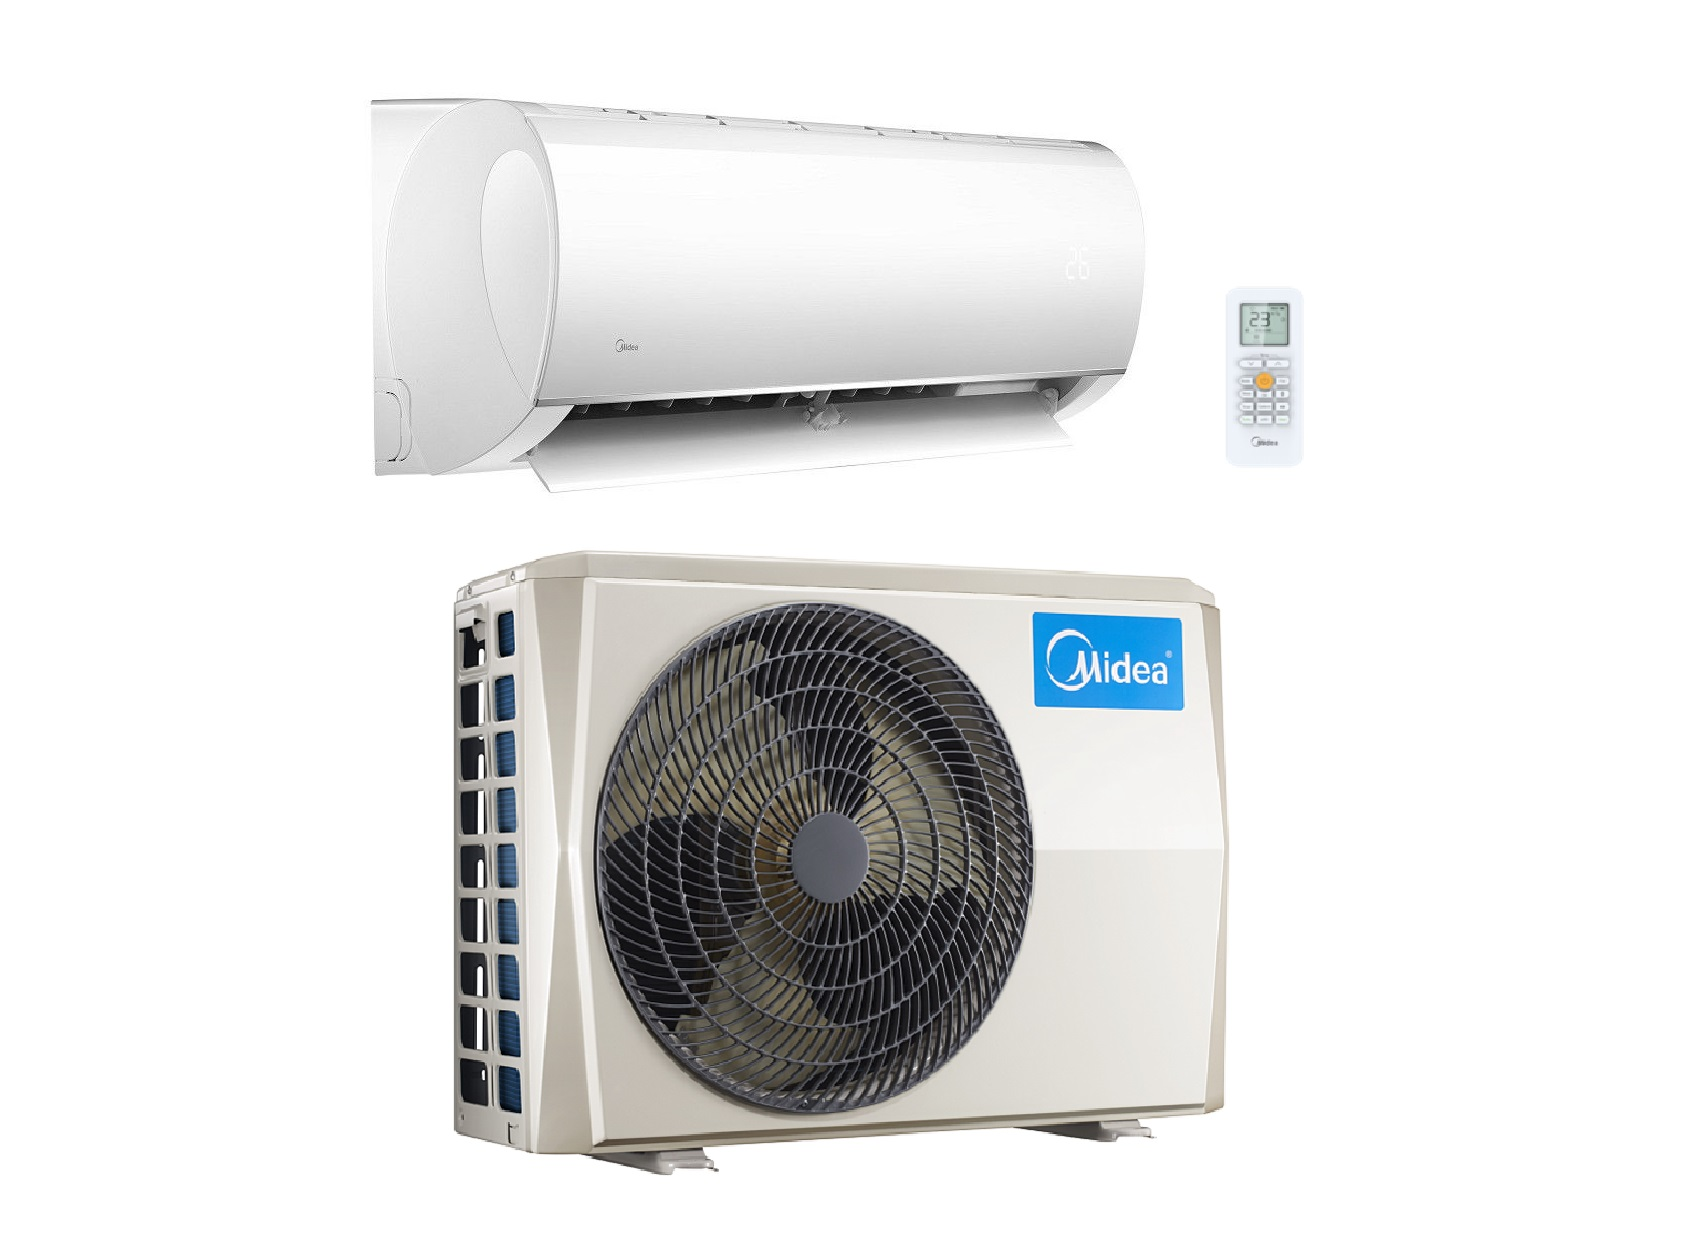 #1479B7 Midea Blanc MSMA 09HRN1 Q ION Air Conditioner To Buy In  Best 4823 Inverter Window Ac photos with 1708x1256 px on helpvideos.info - Air Conditioners, Air Coolers and more